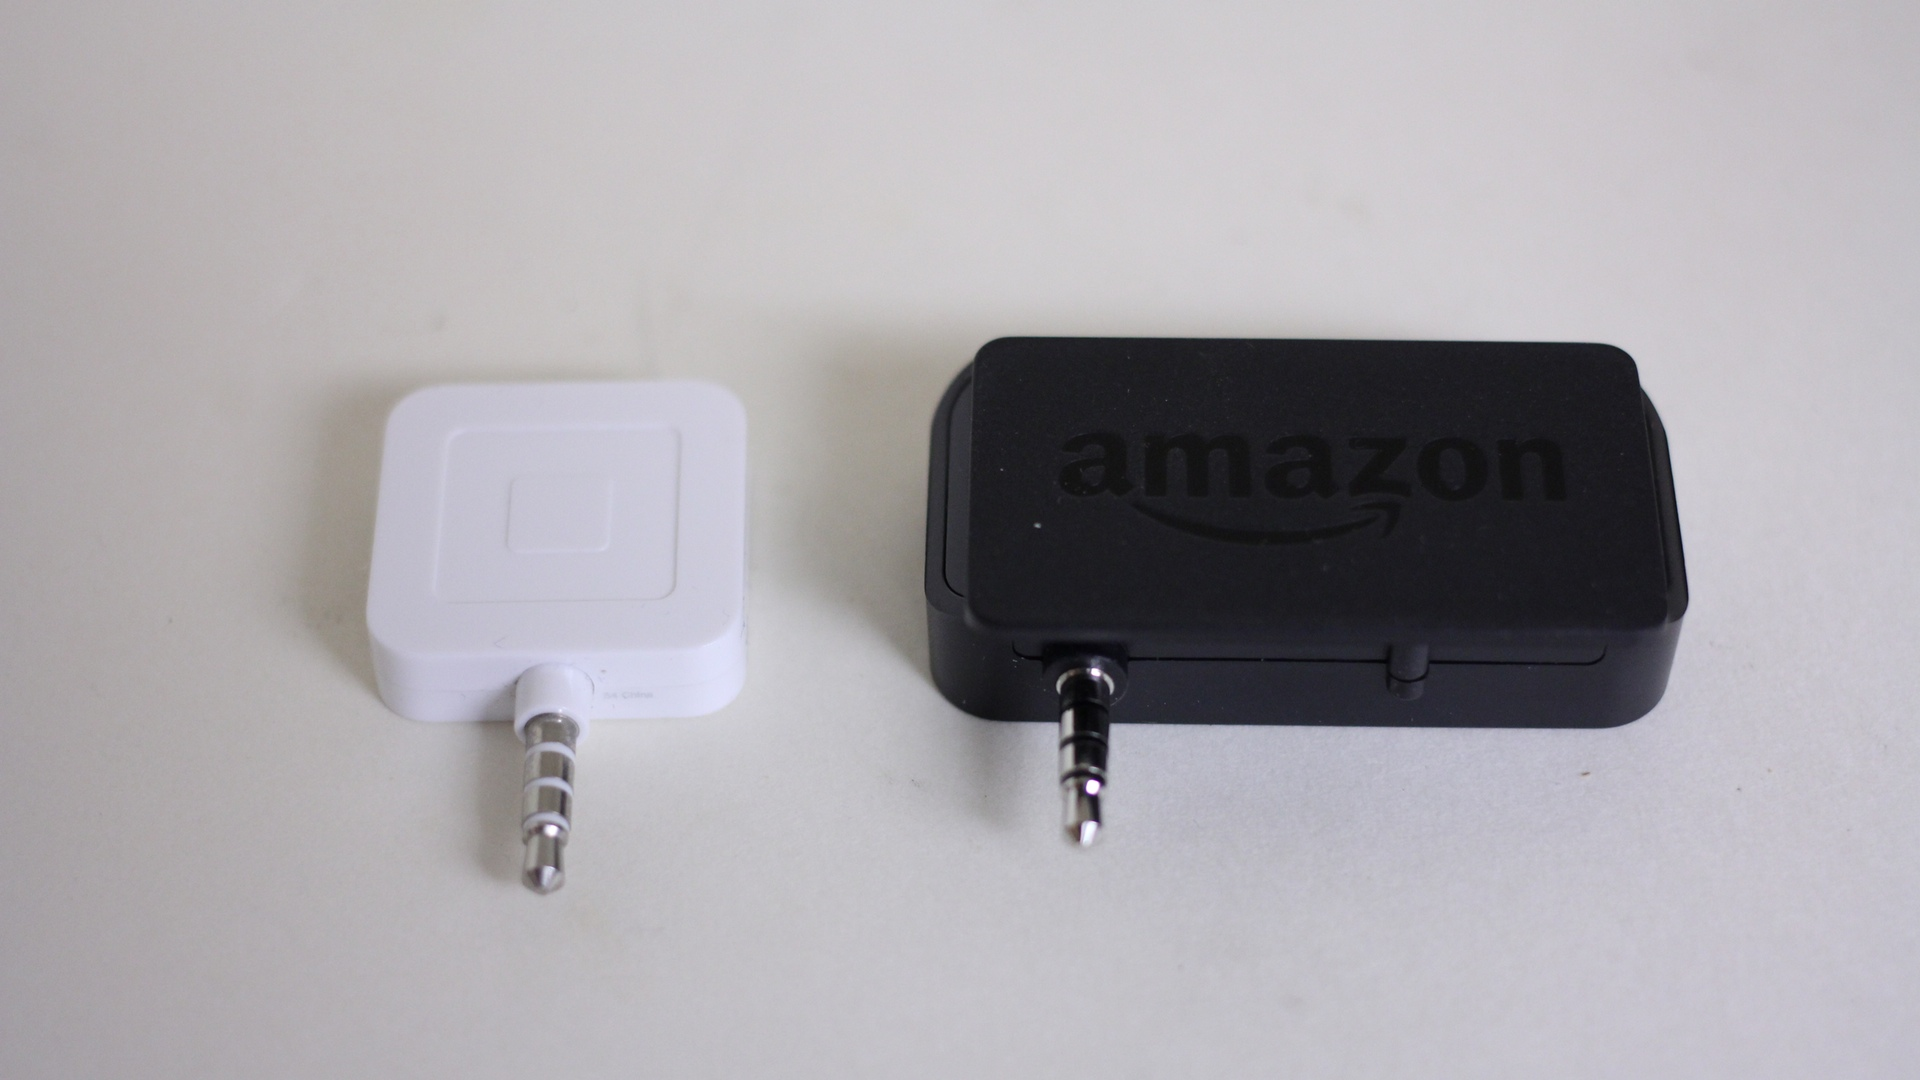 Amazon and Square Card Reader